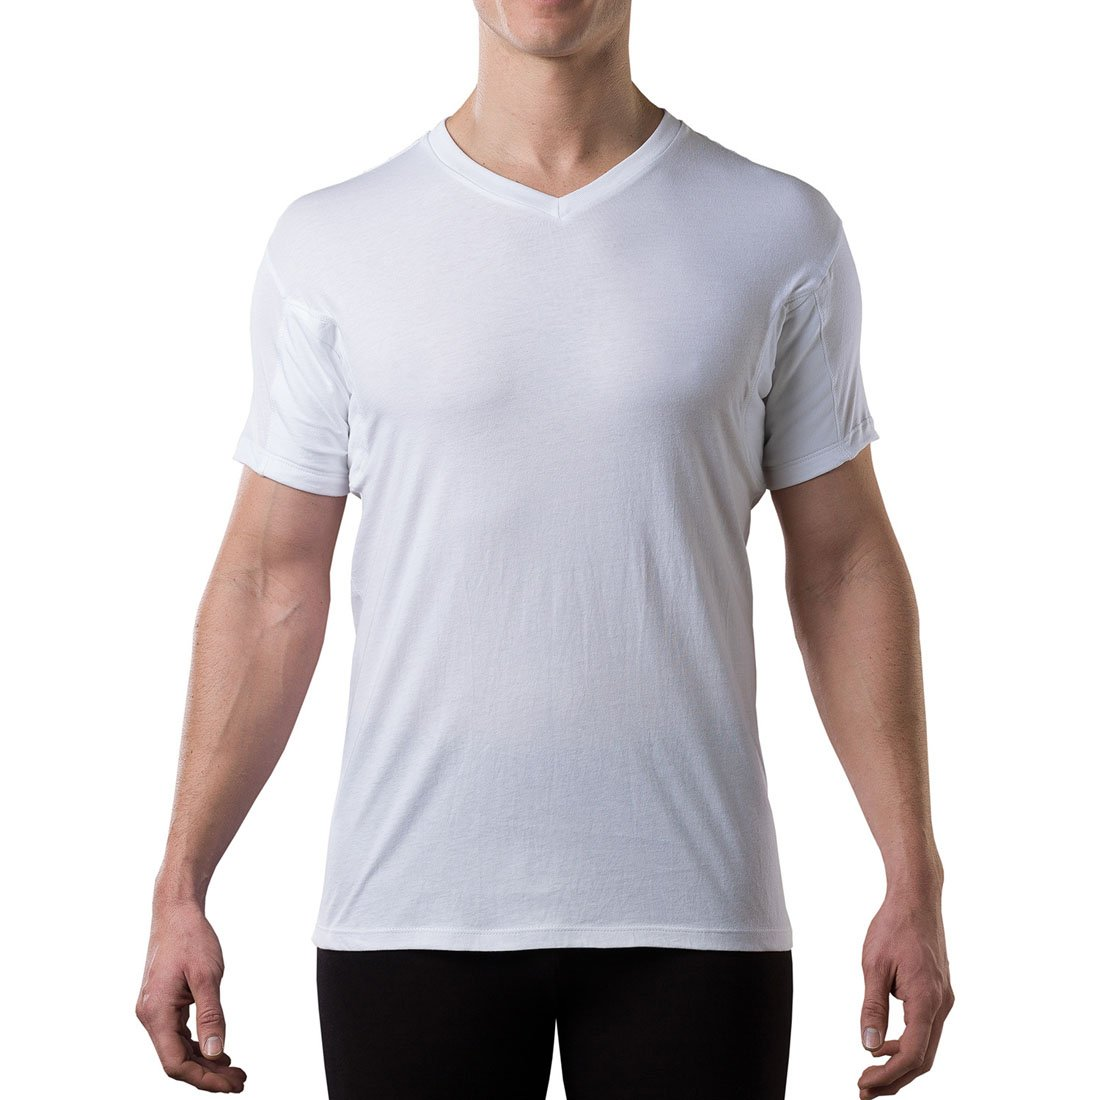 The Thompson Tee Men's V-Neck Hydro-Shield Sweat Proof Technology Undershirt